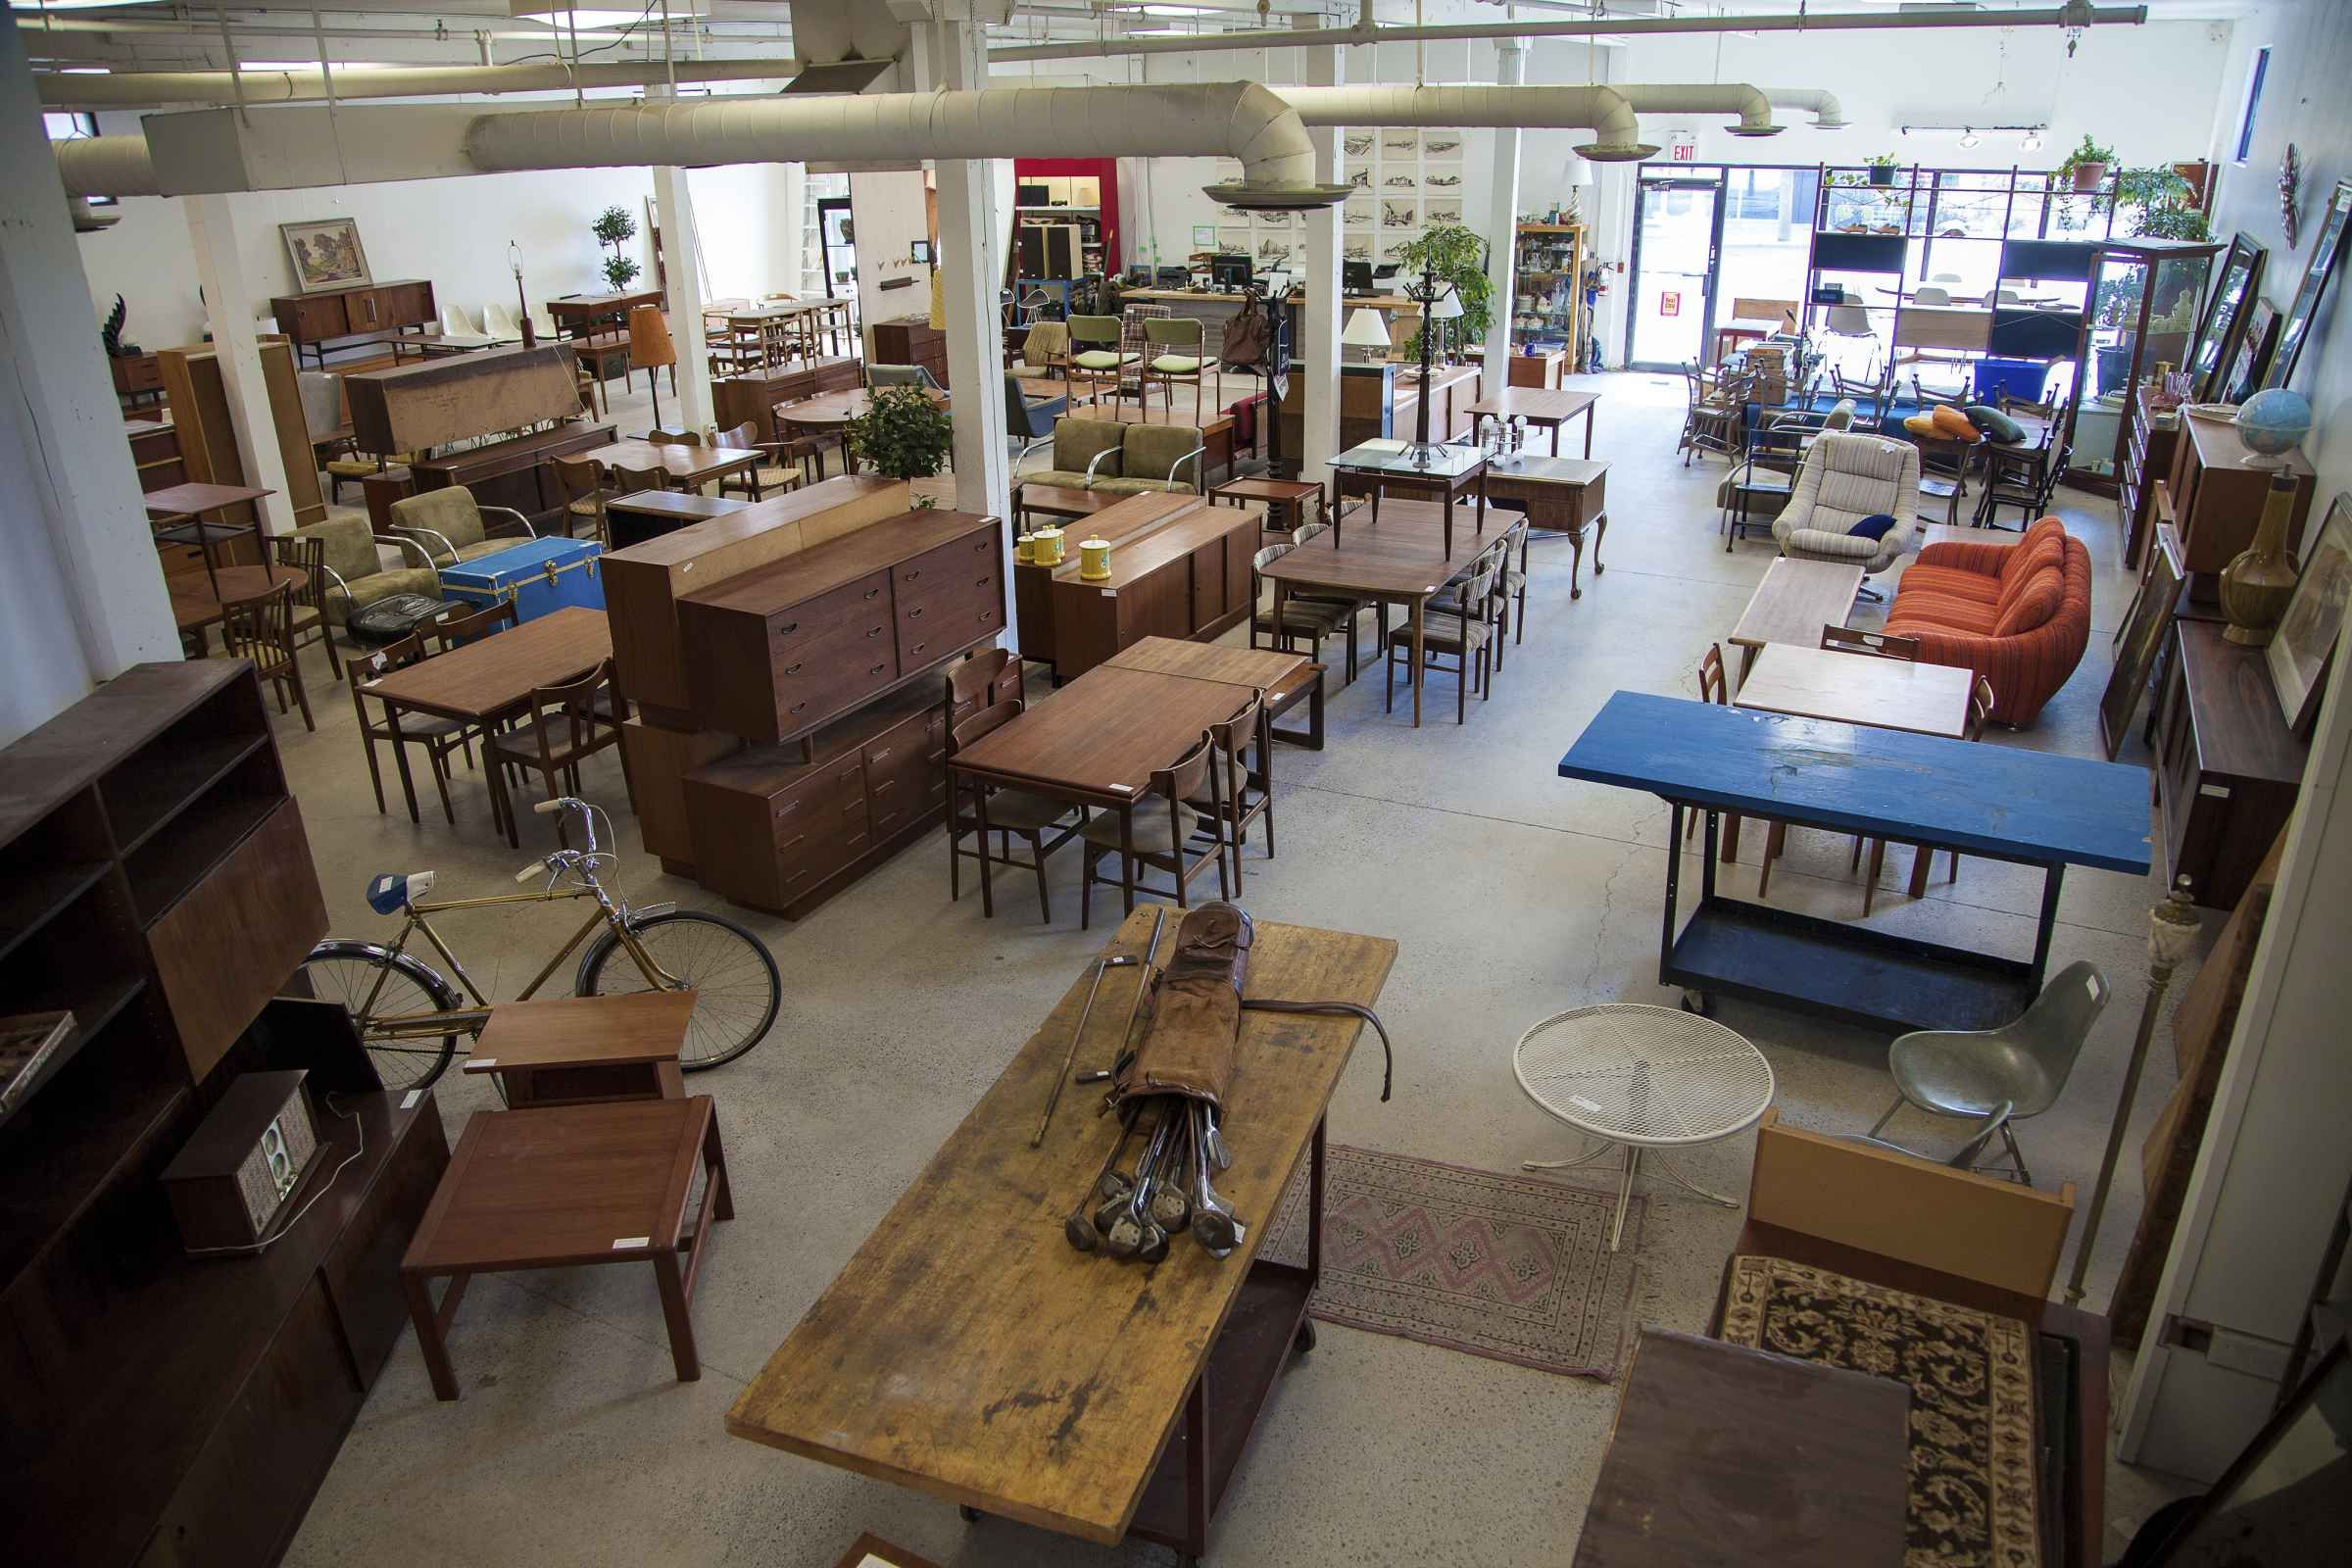 Finding A Decent Second Hand Furniture Store Might Be A Daunting Task. This  Short